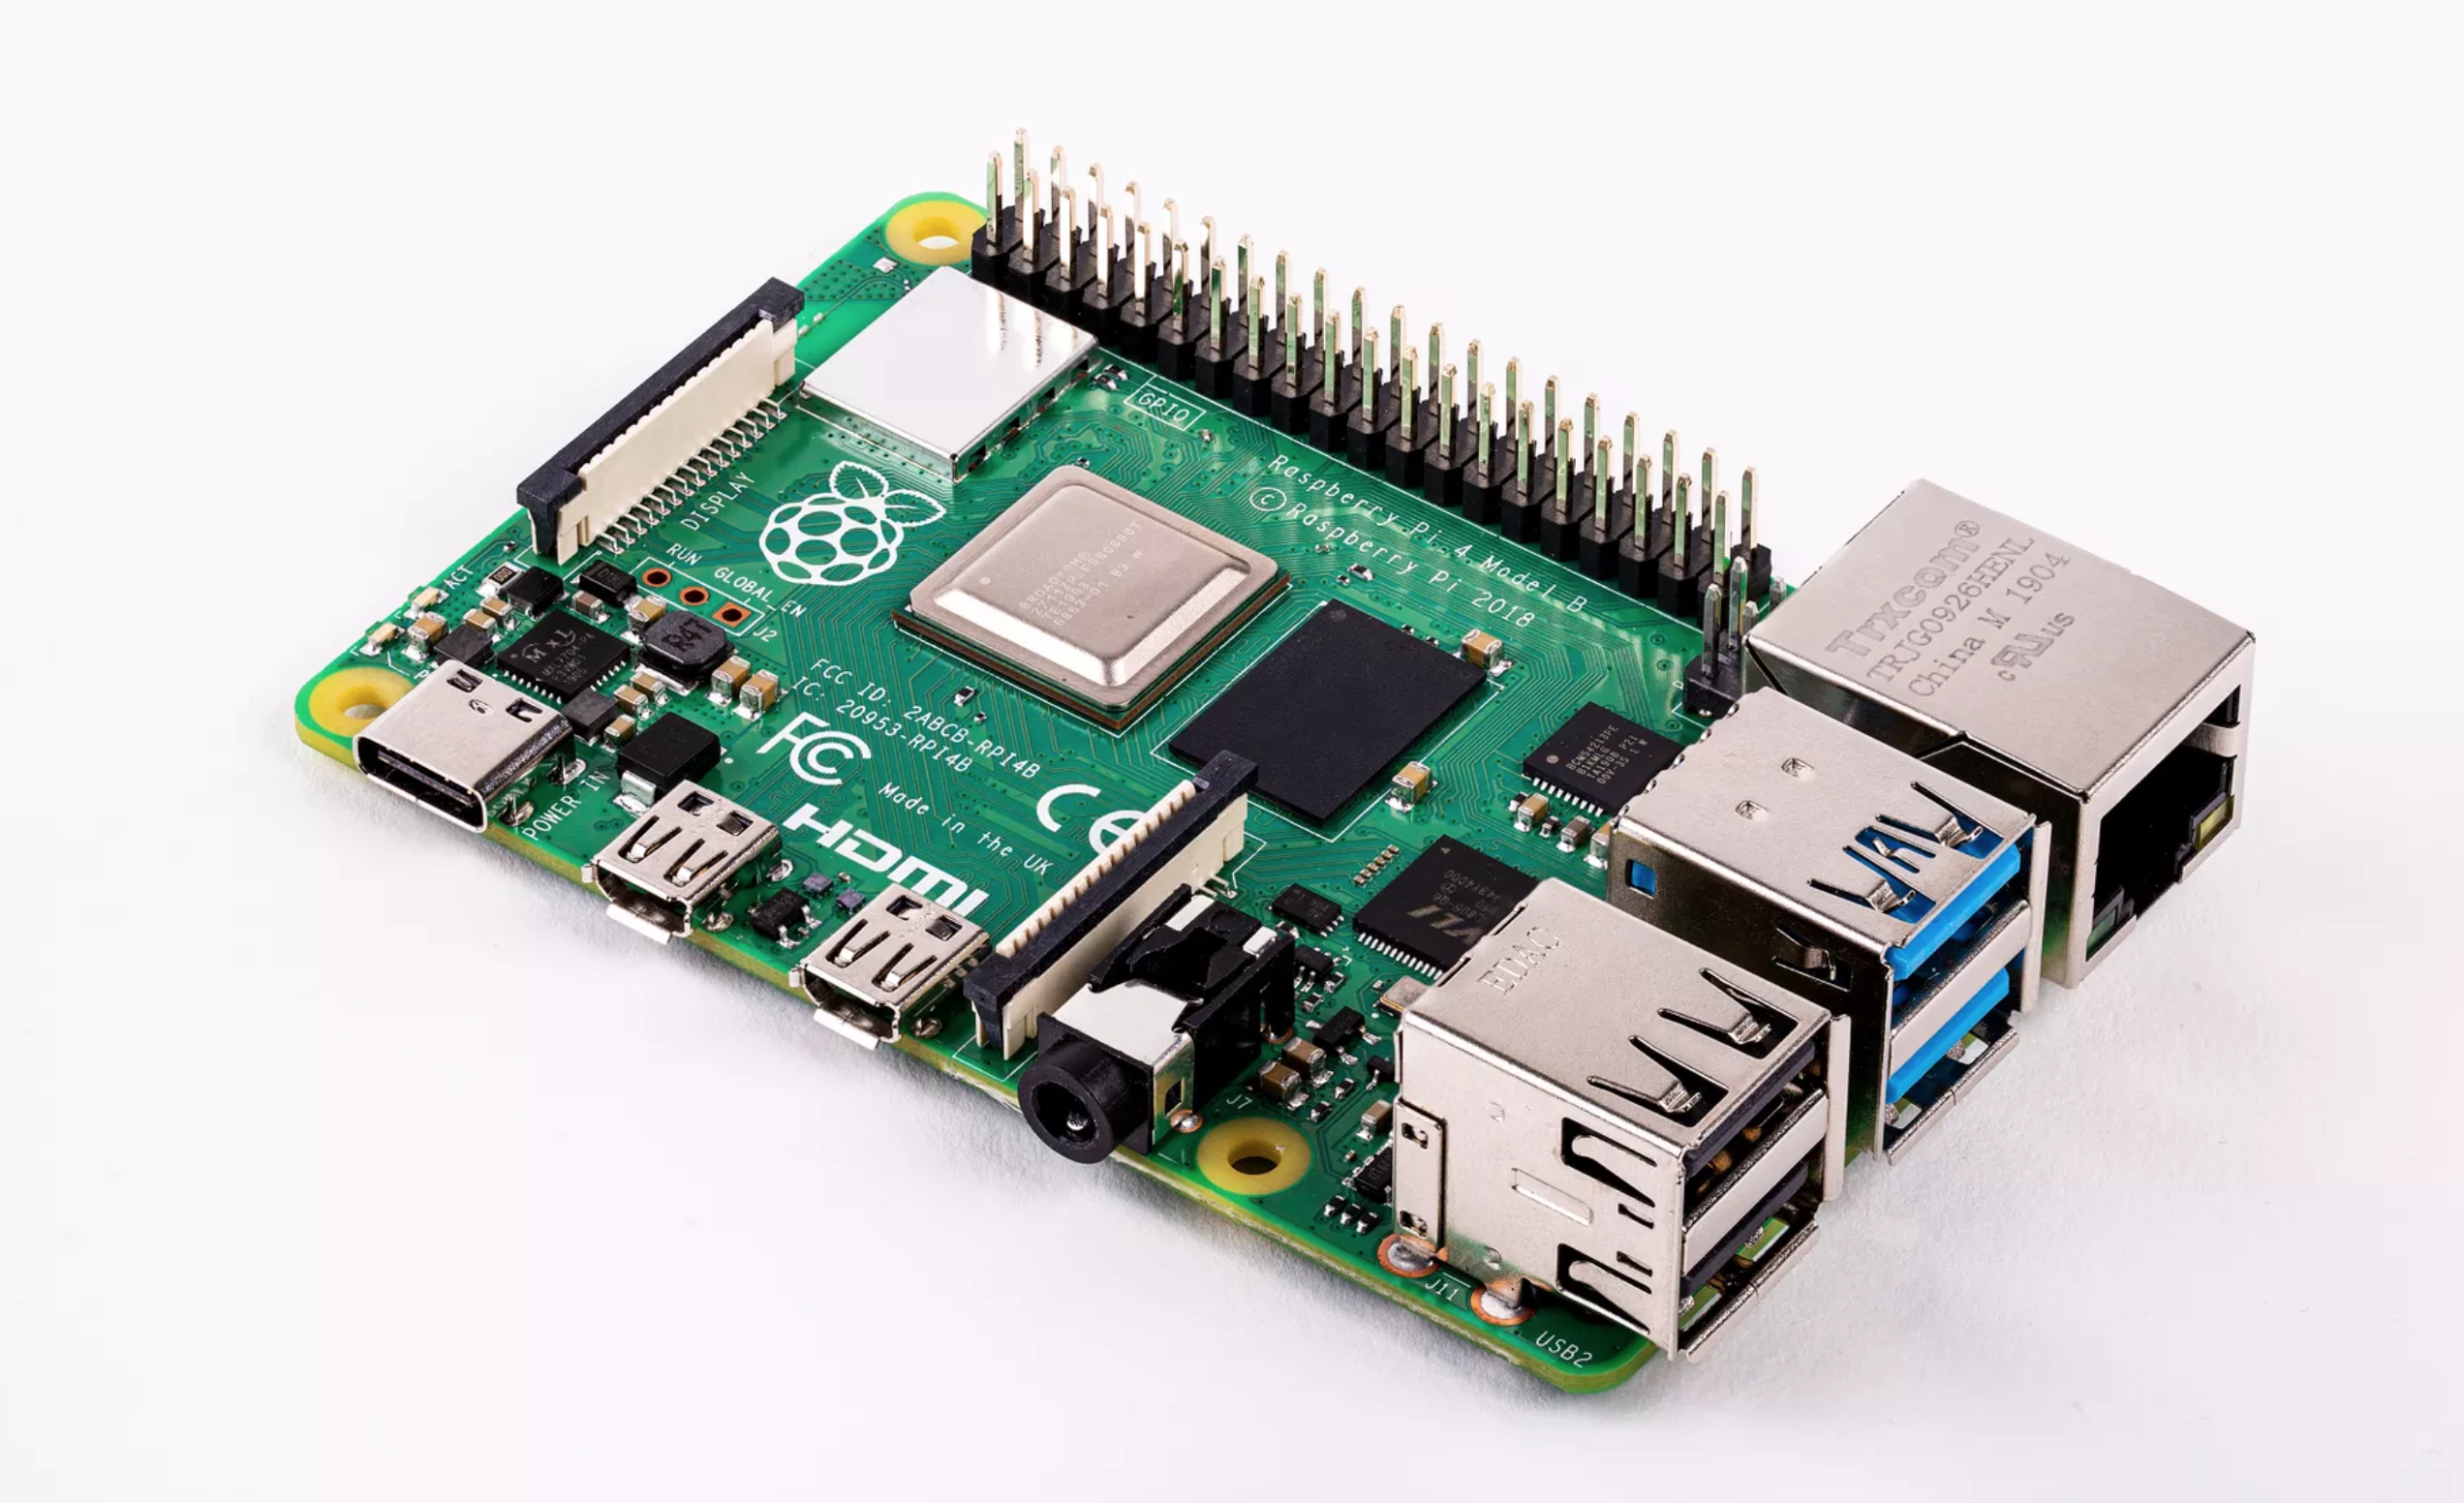 Raspberry Pi 4 Unveiled with Bigger CPU, Dual 4K Monitor Support, Up to 4GB of RAM